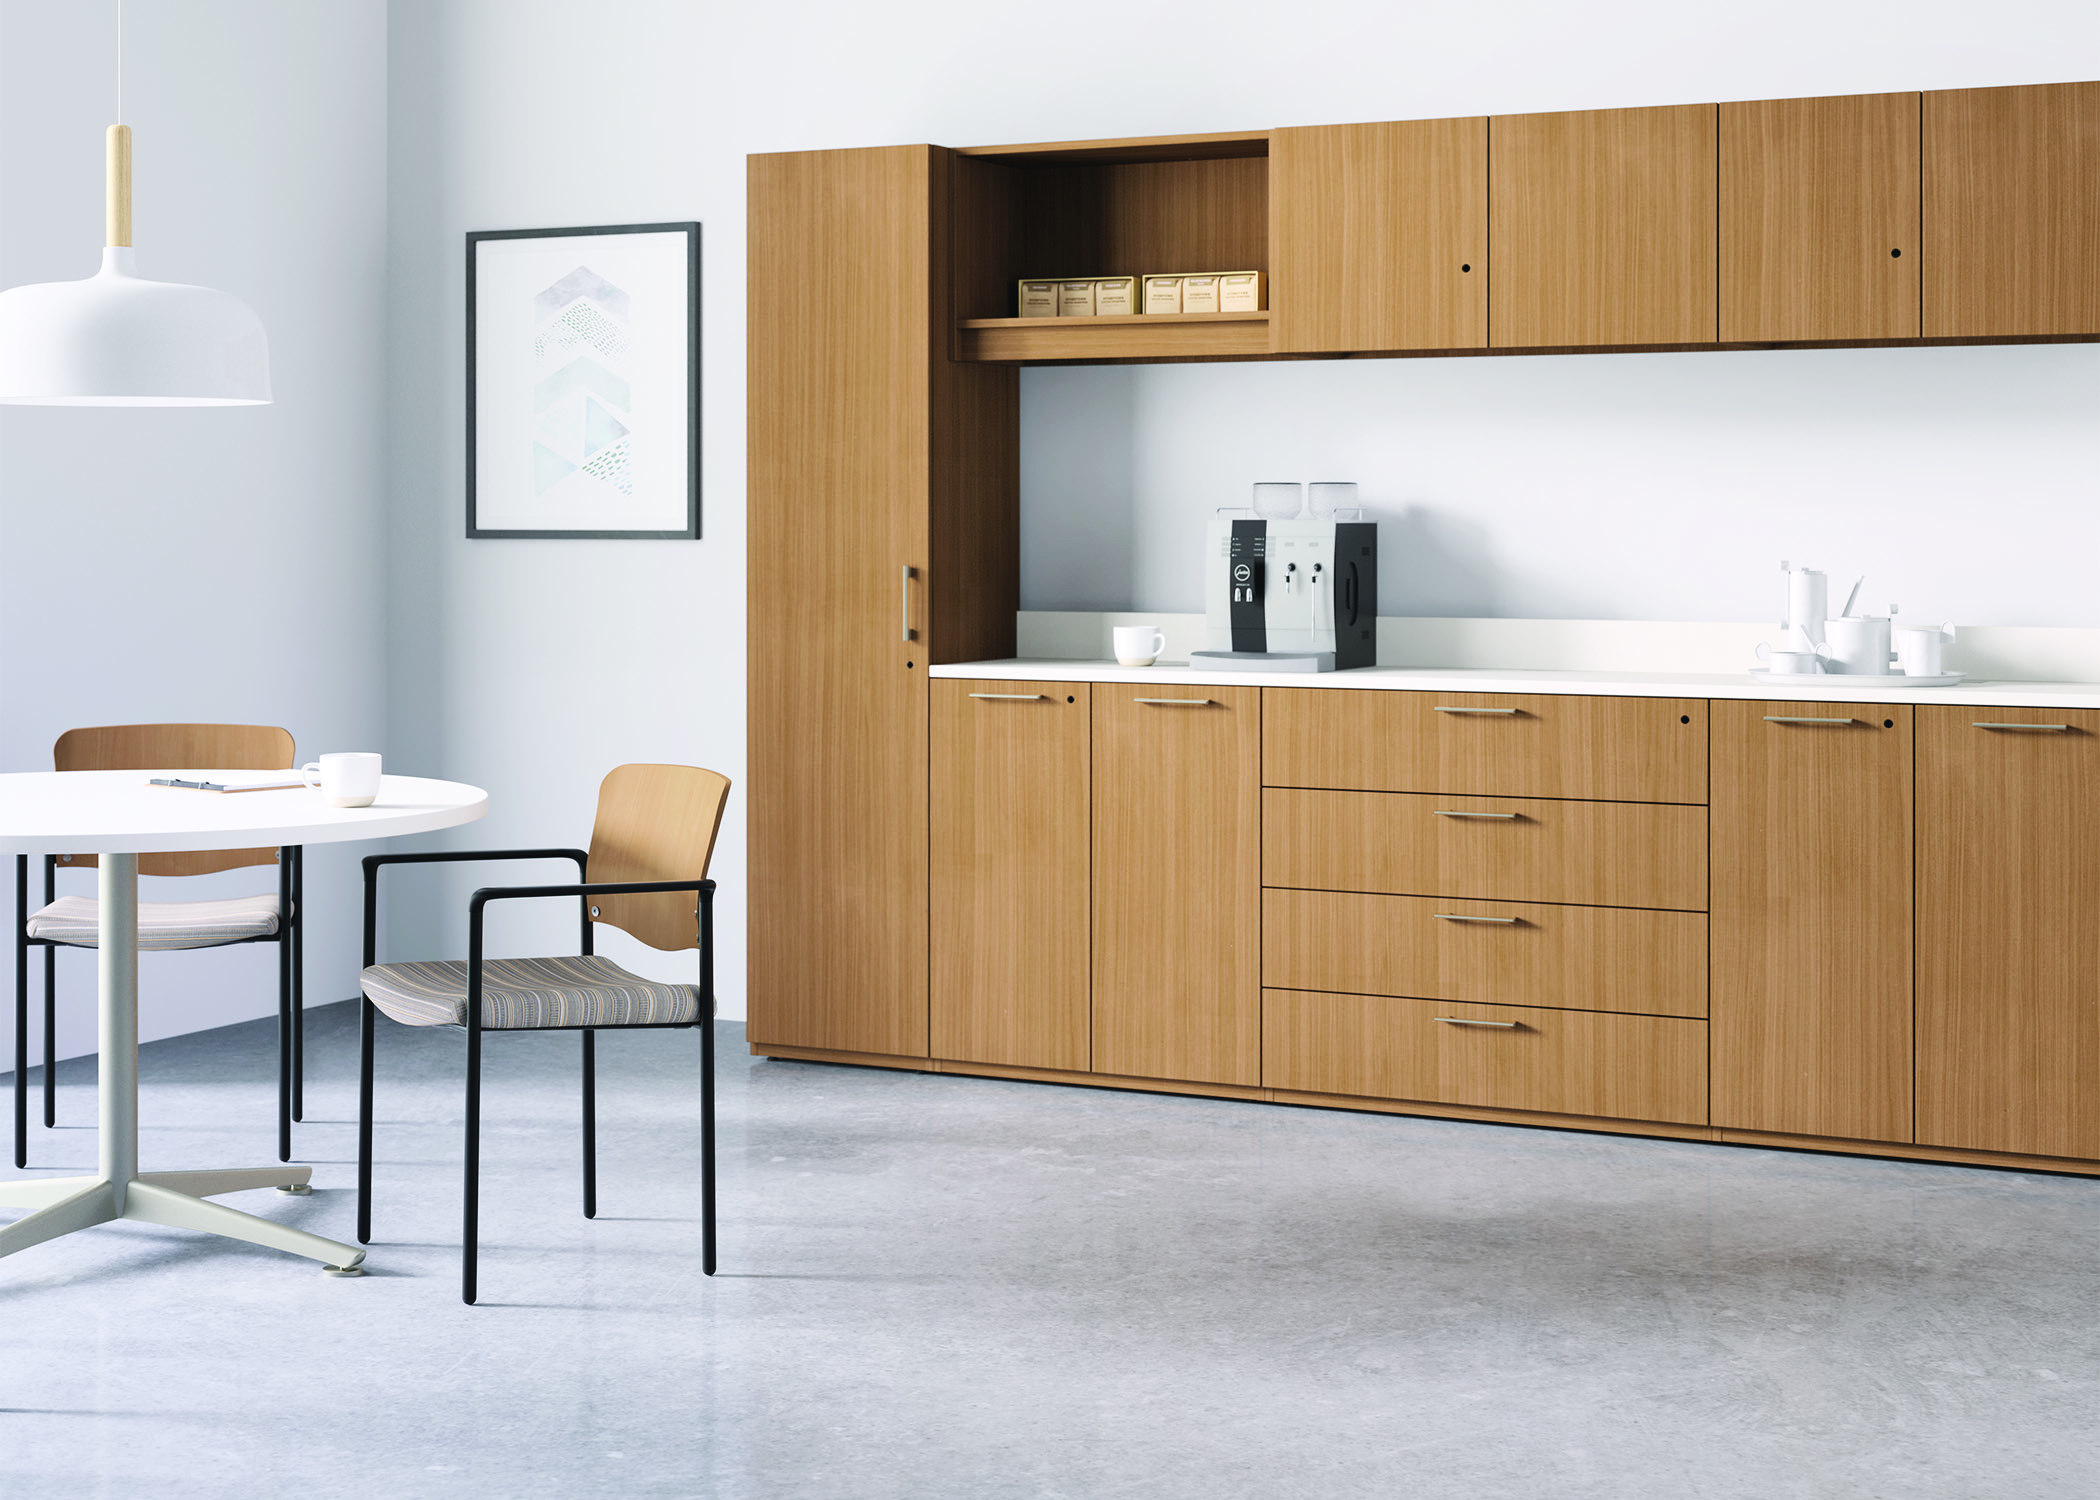 National Office Furniture Announces New Products And Enhancements